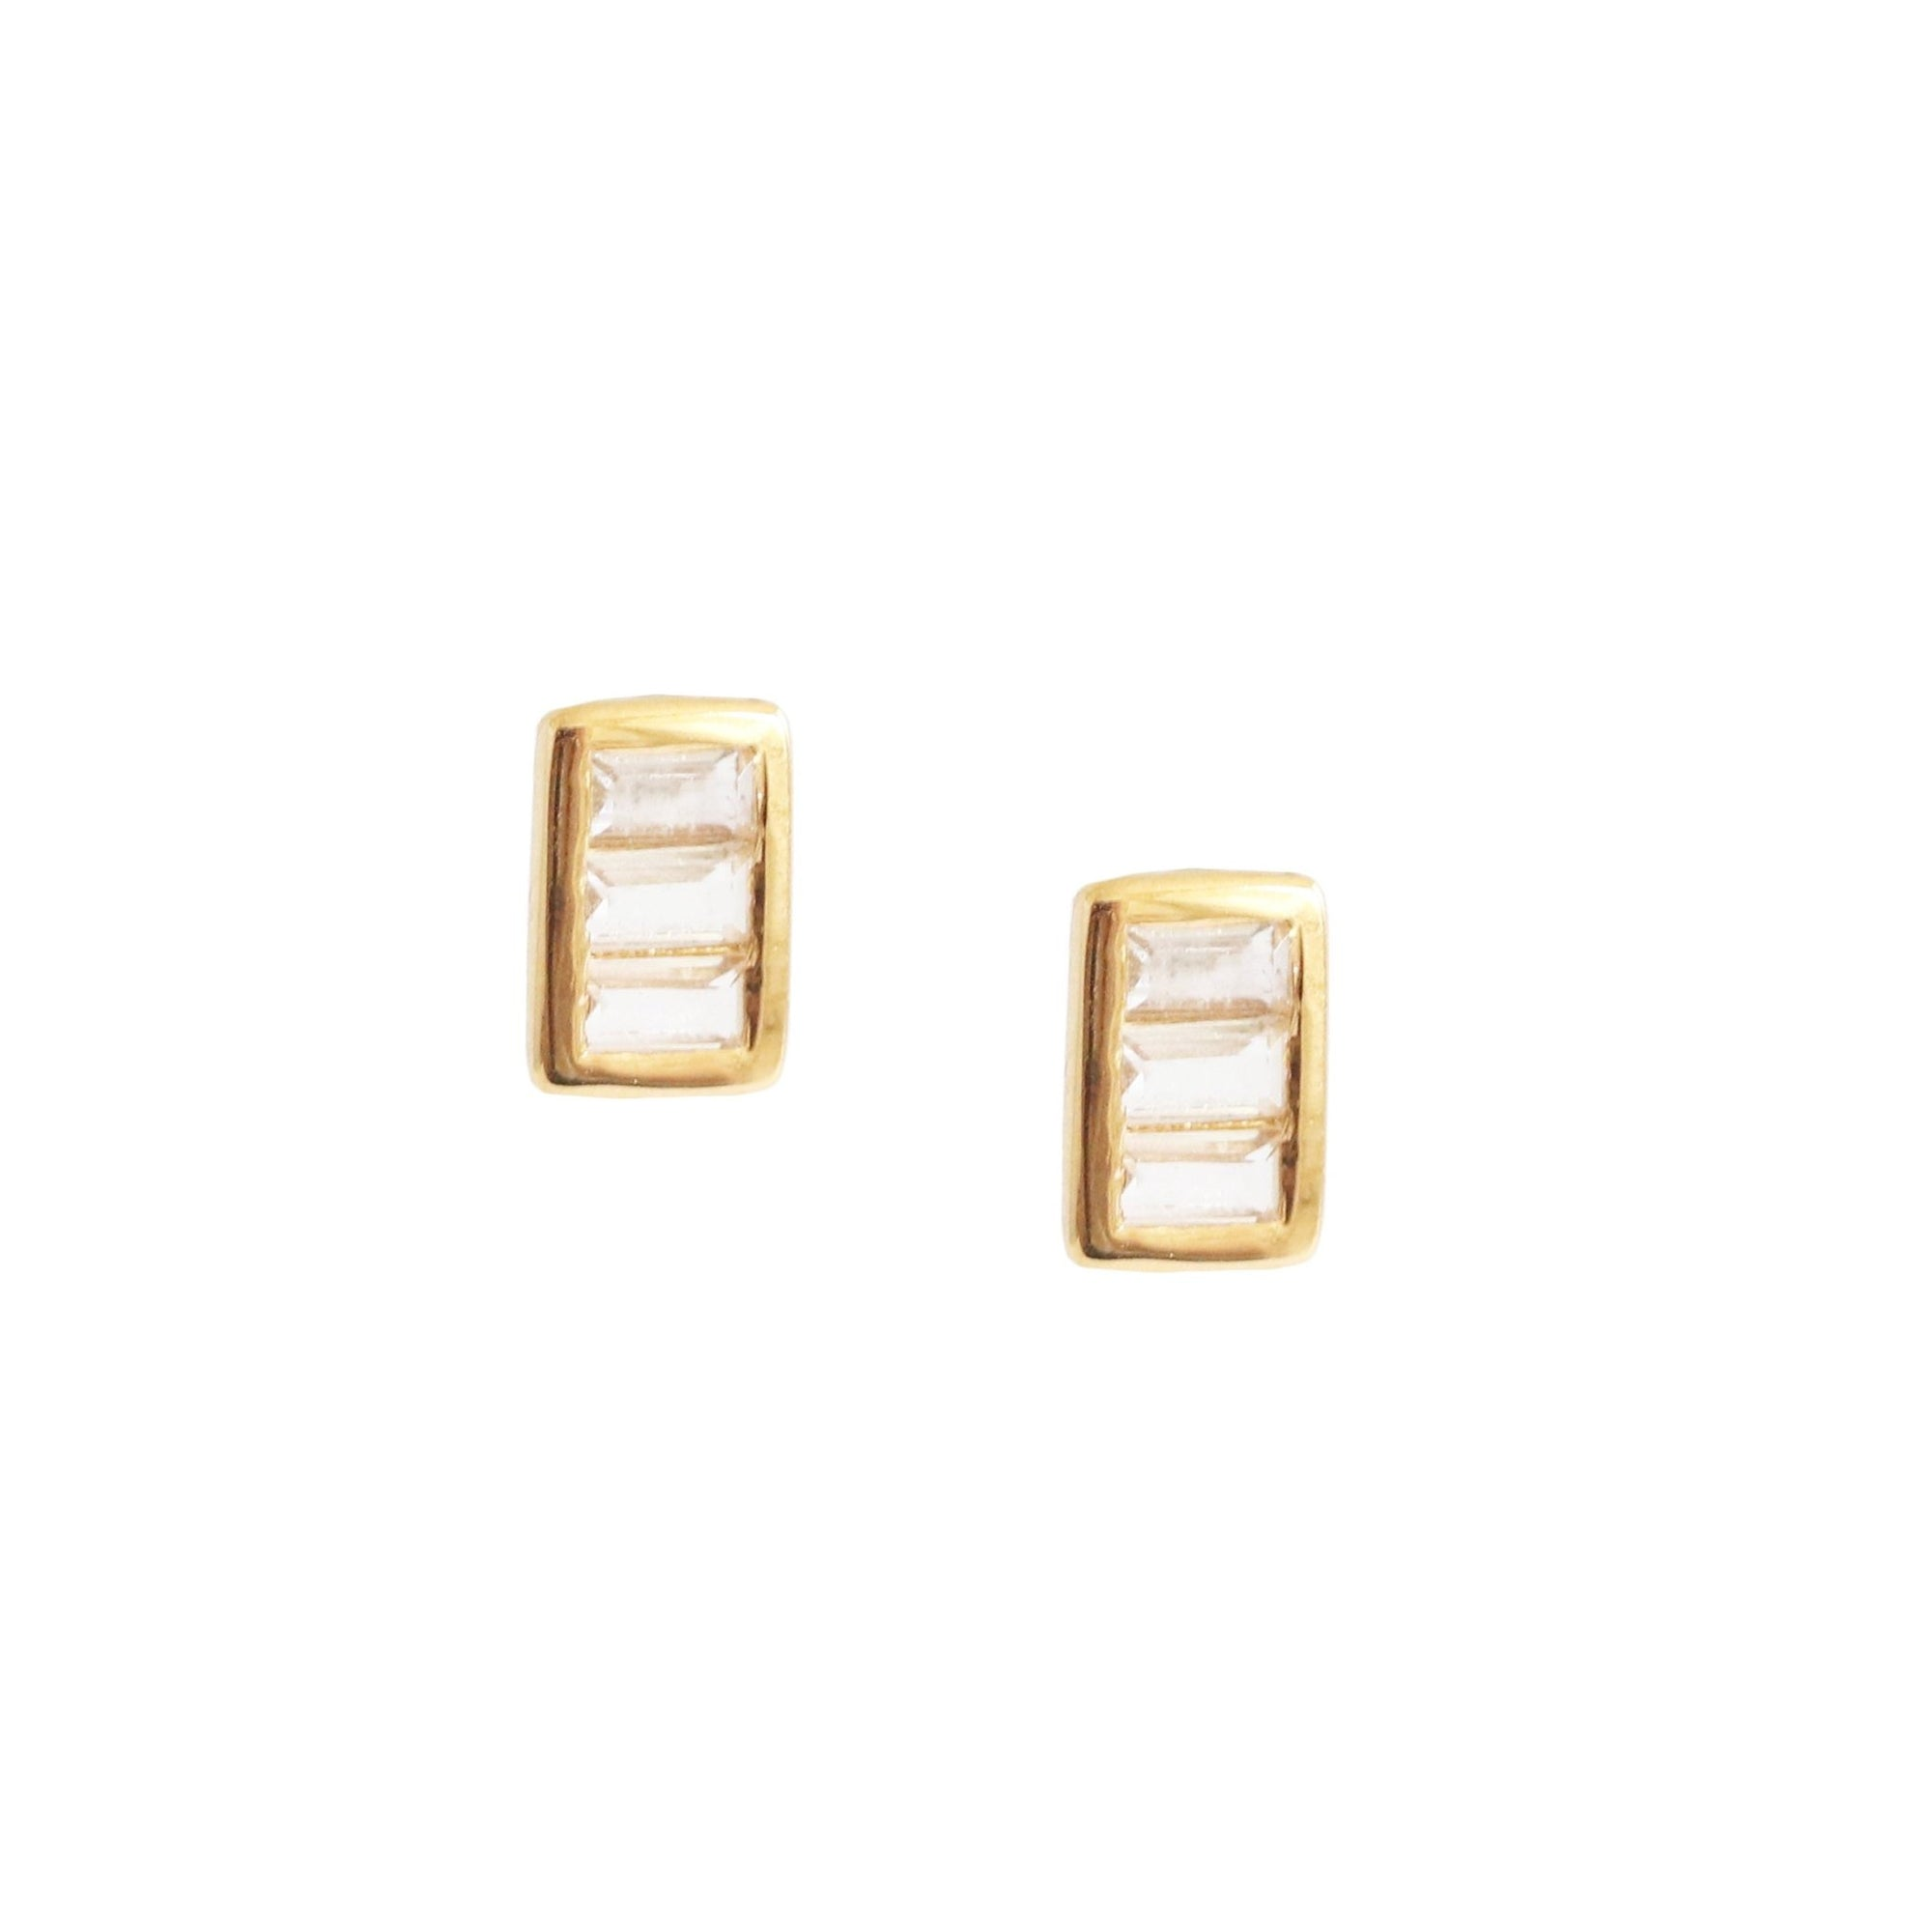 Tiny Loyal Stacked Studs - White Topaz & Gold - SO PRETTY CARA COTTER